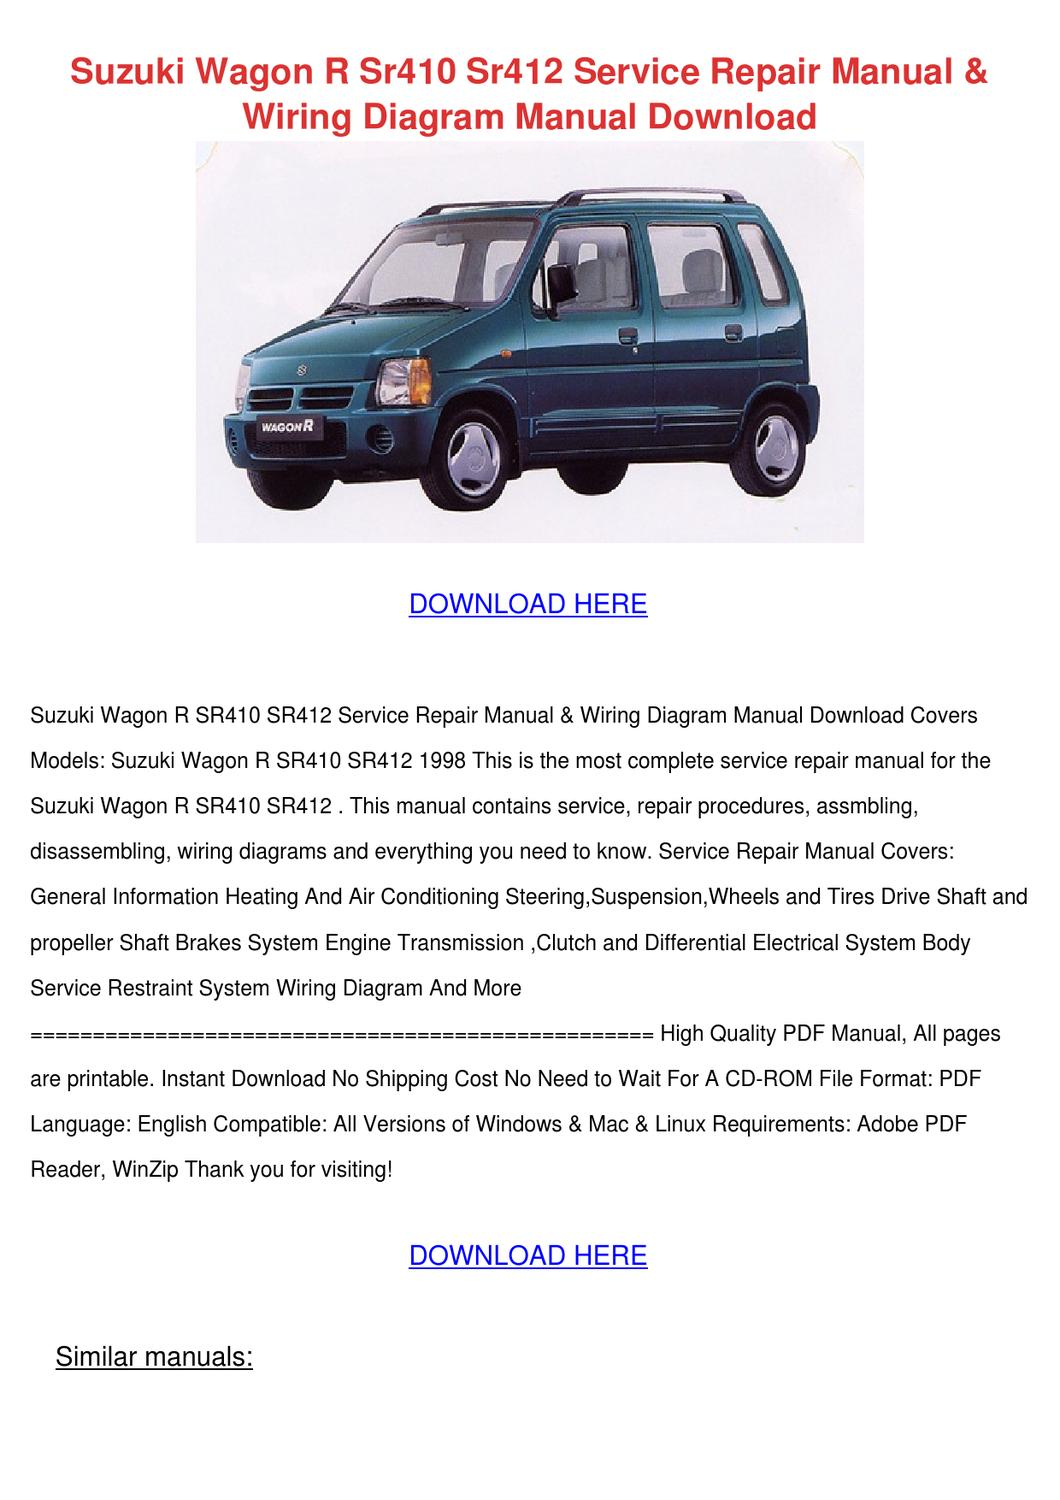 Suzuki Wagon R Electrical Wiring Diagram | Wiring Liry on car schematics, chevy truck diagrams, dodge ram vacuum diagrams, car motors diagrams, 7.3 ford diesel diagrams, custom stereo diagrams, car parts diagrams, factory car stereo diagrams, car electrical, car starting system, battery diagrams, autozone repair diagrams, car door lock diagram, car exhaust, club car manuals and diagrams, car vacuum diagrams, car battery, 3930 ford tractor parts diagrams, club car manual wire diagrams, pinout diagrams,